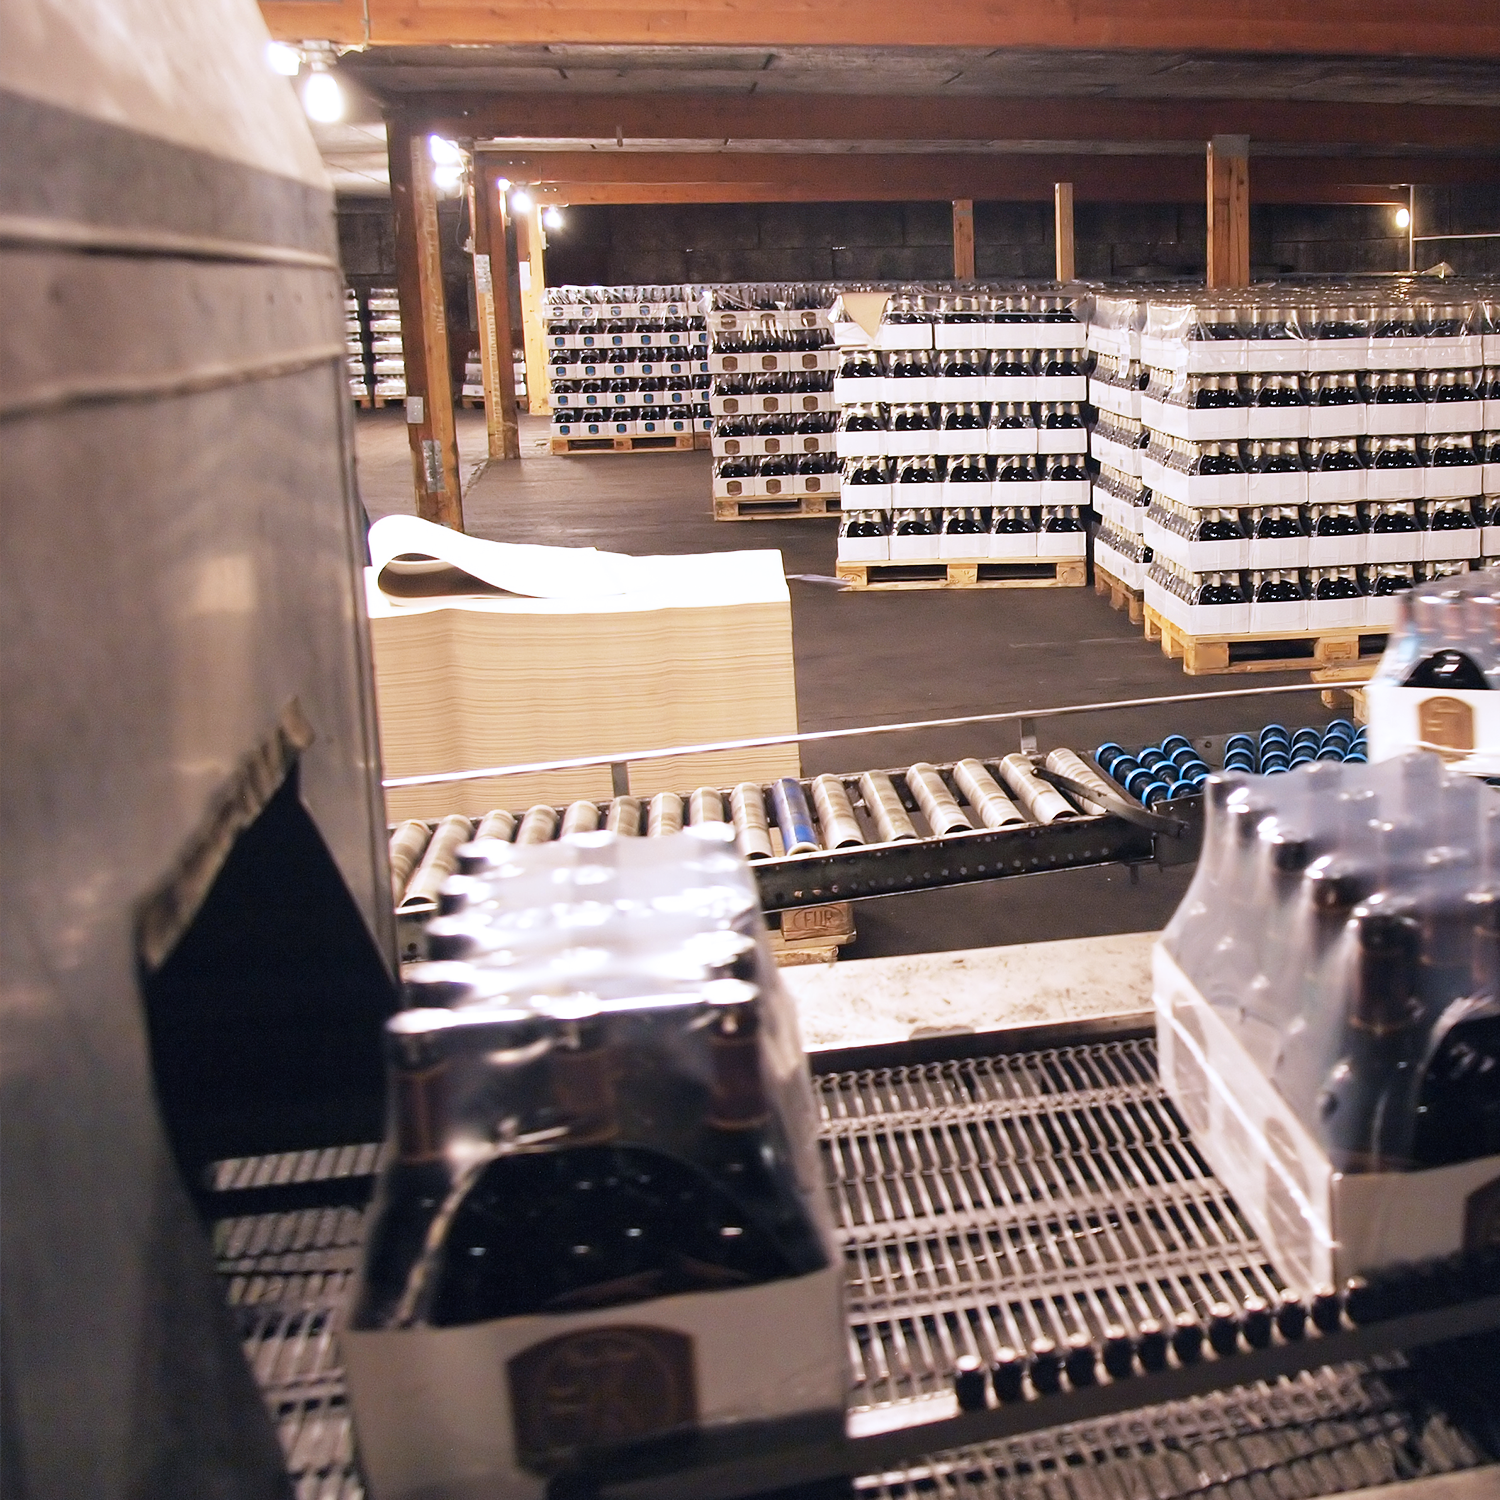 shrink wrapped cases of wine coming out of shrink tunnel in packaging facility